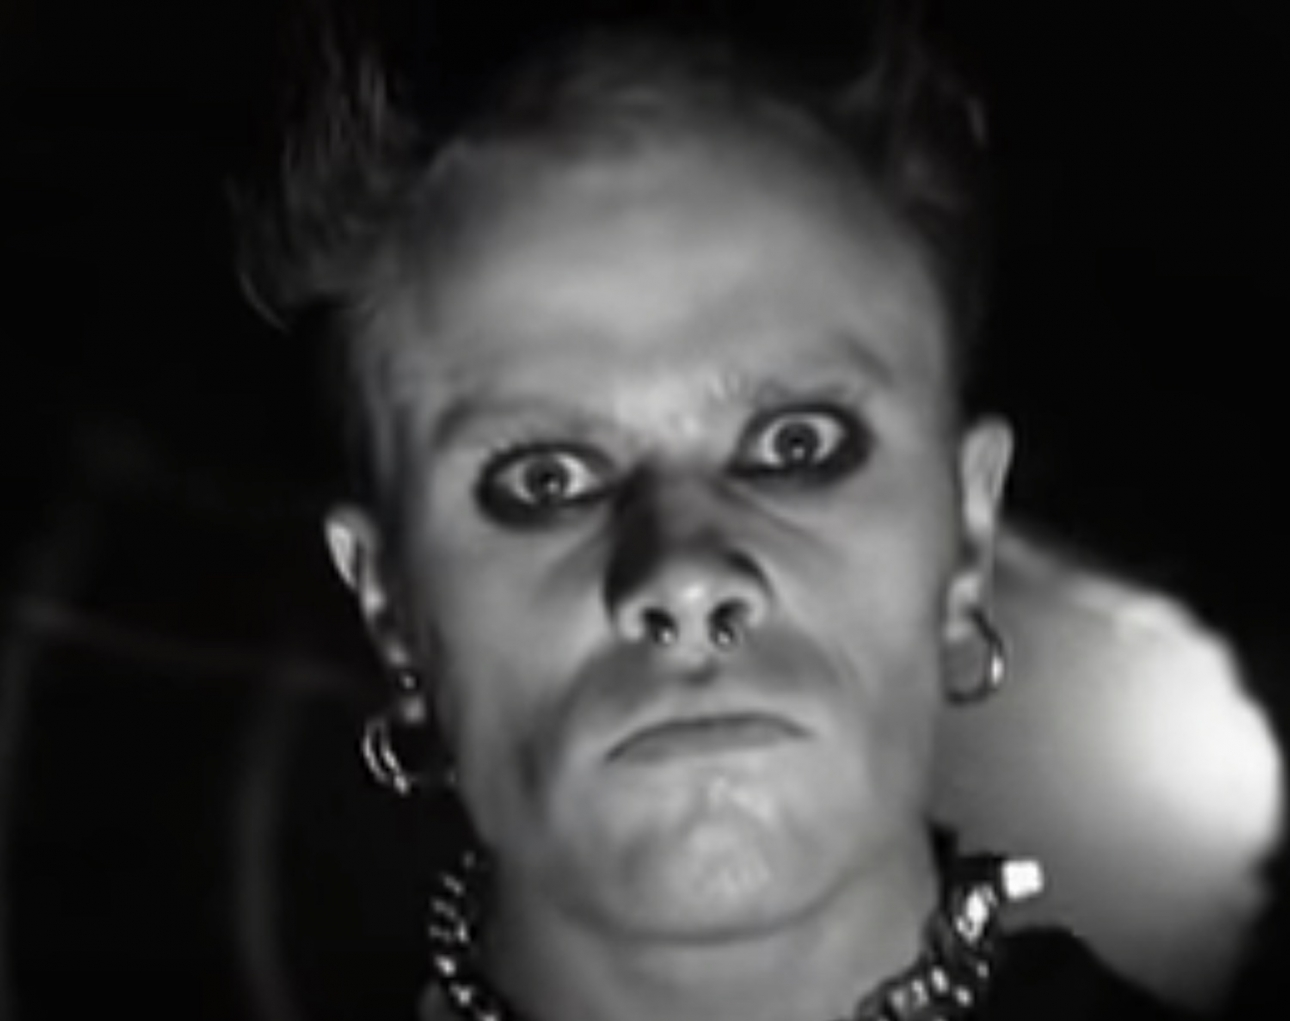 There's a petition to build a Keith Flint statue in his hometown